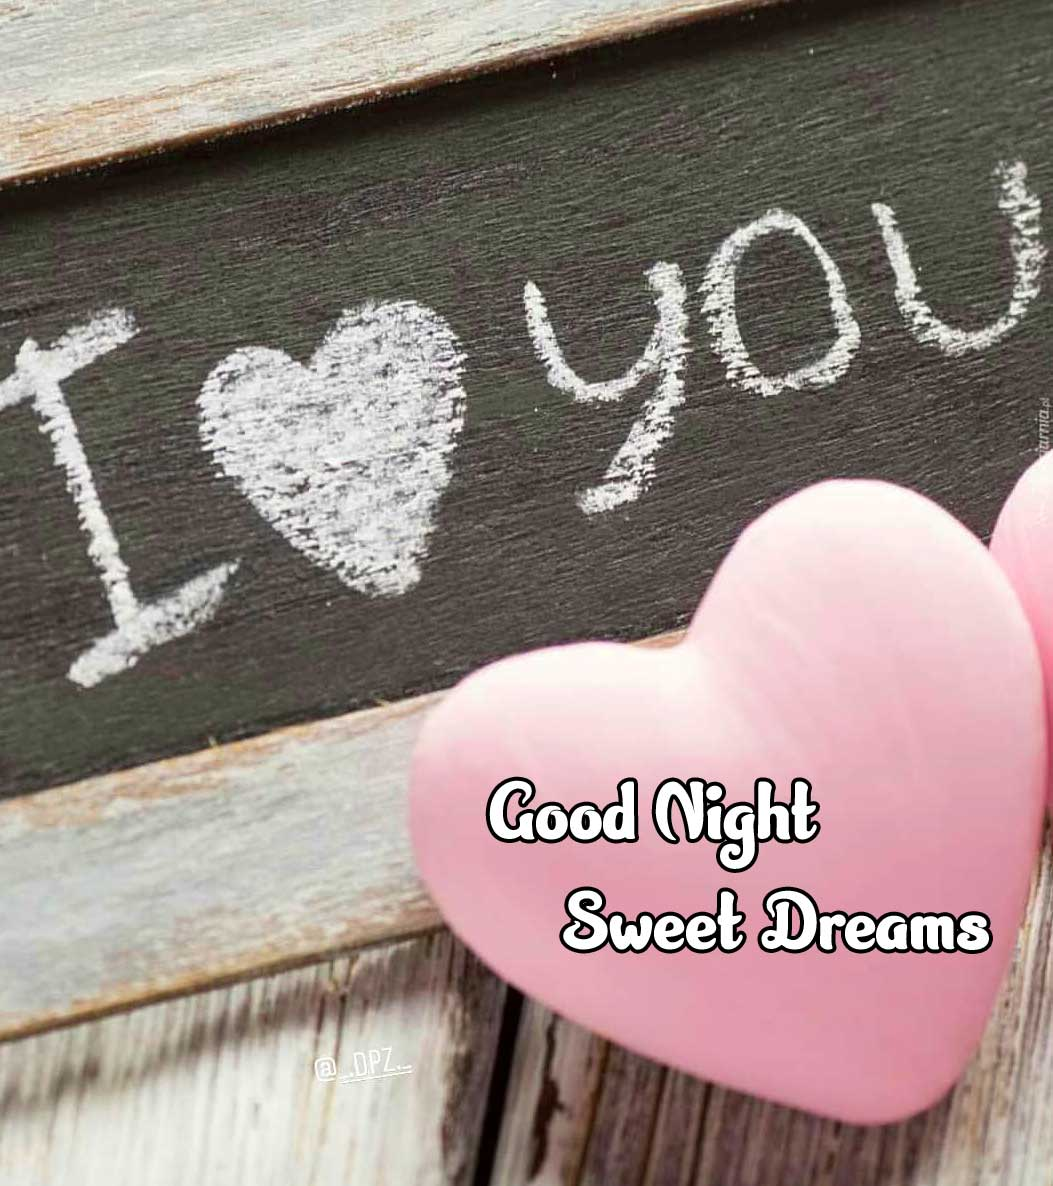 good night sweet dreams images for friends 6